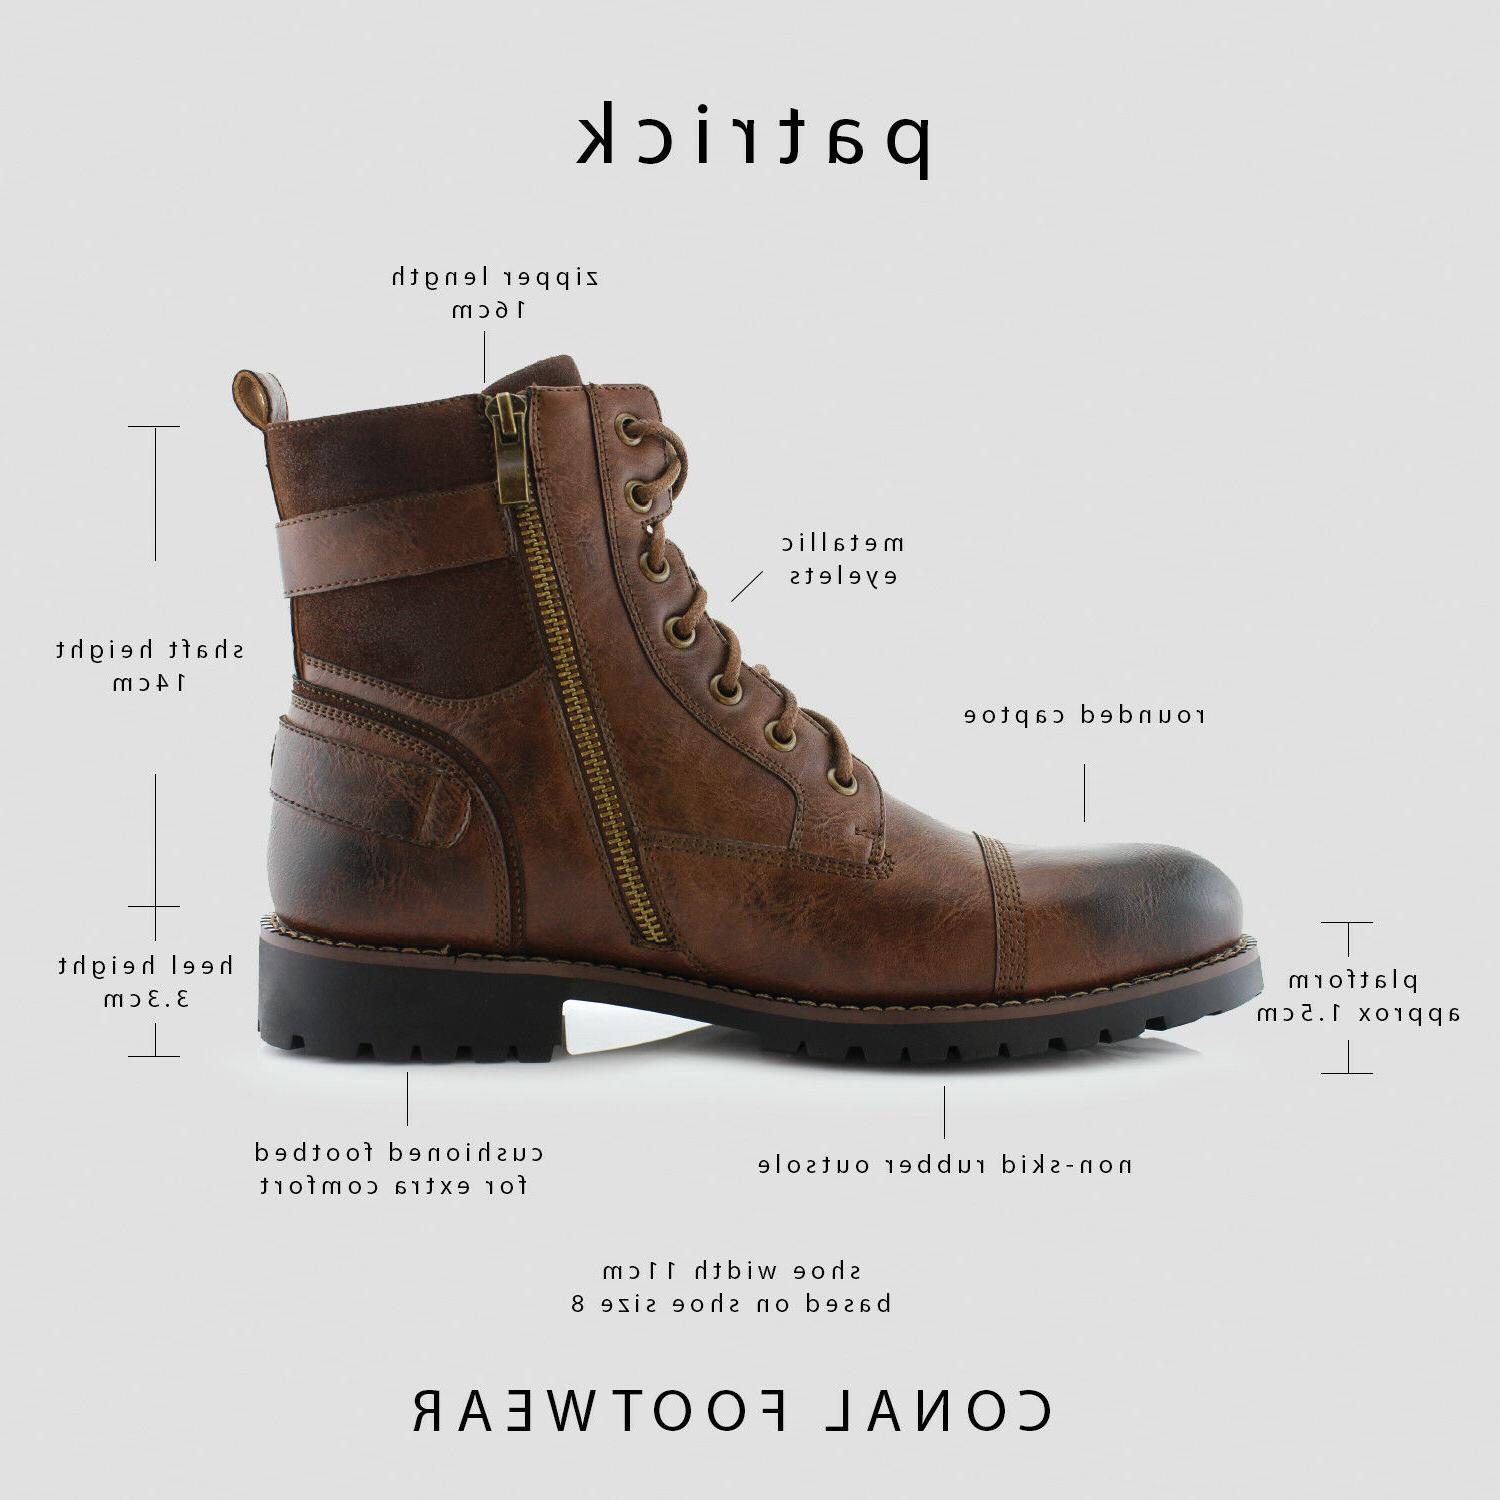 Men's Casual Boots Riding Hiking Waterproof Synthetic